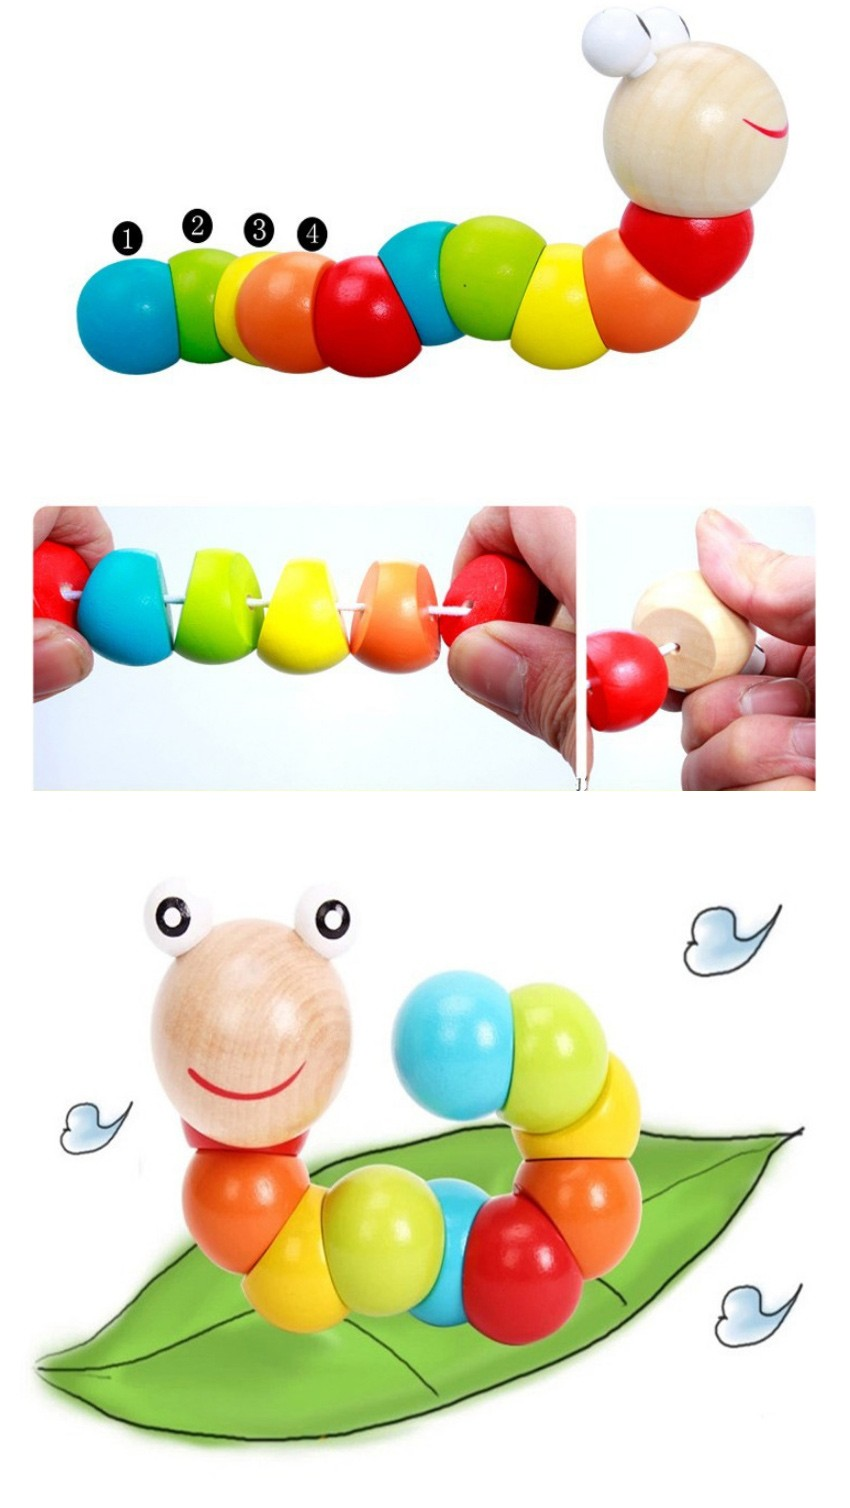 Colorful Insects Puzzles Kids Educational Wooden Toys Baby Children Fingers Flexible Training Science Twisting Worm Toys 5